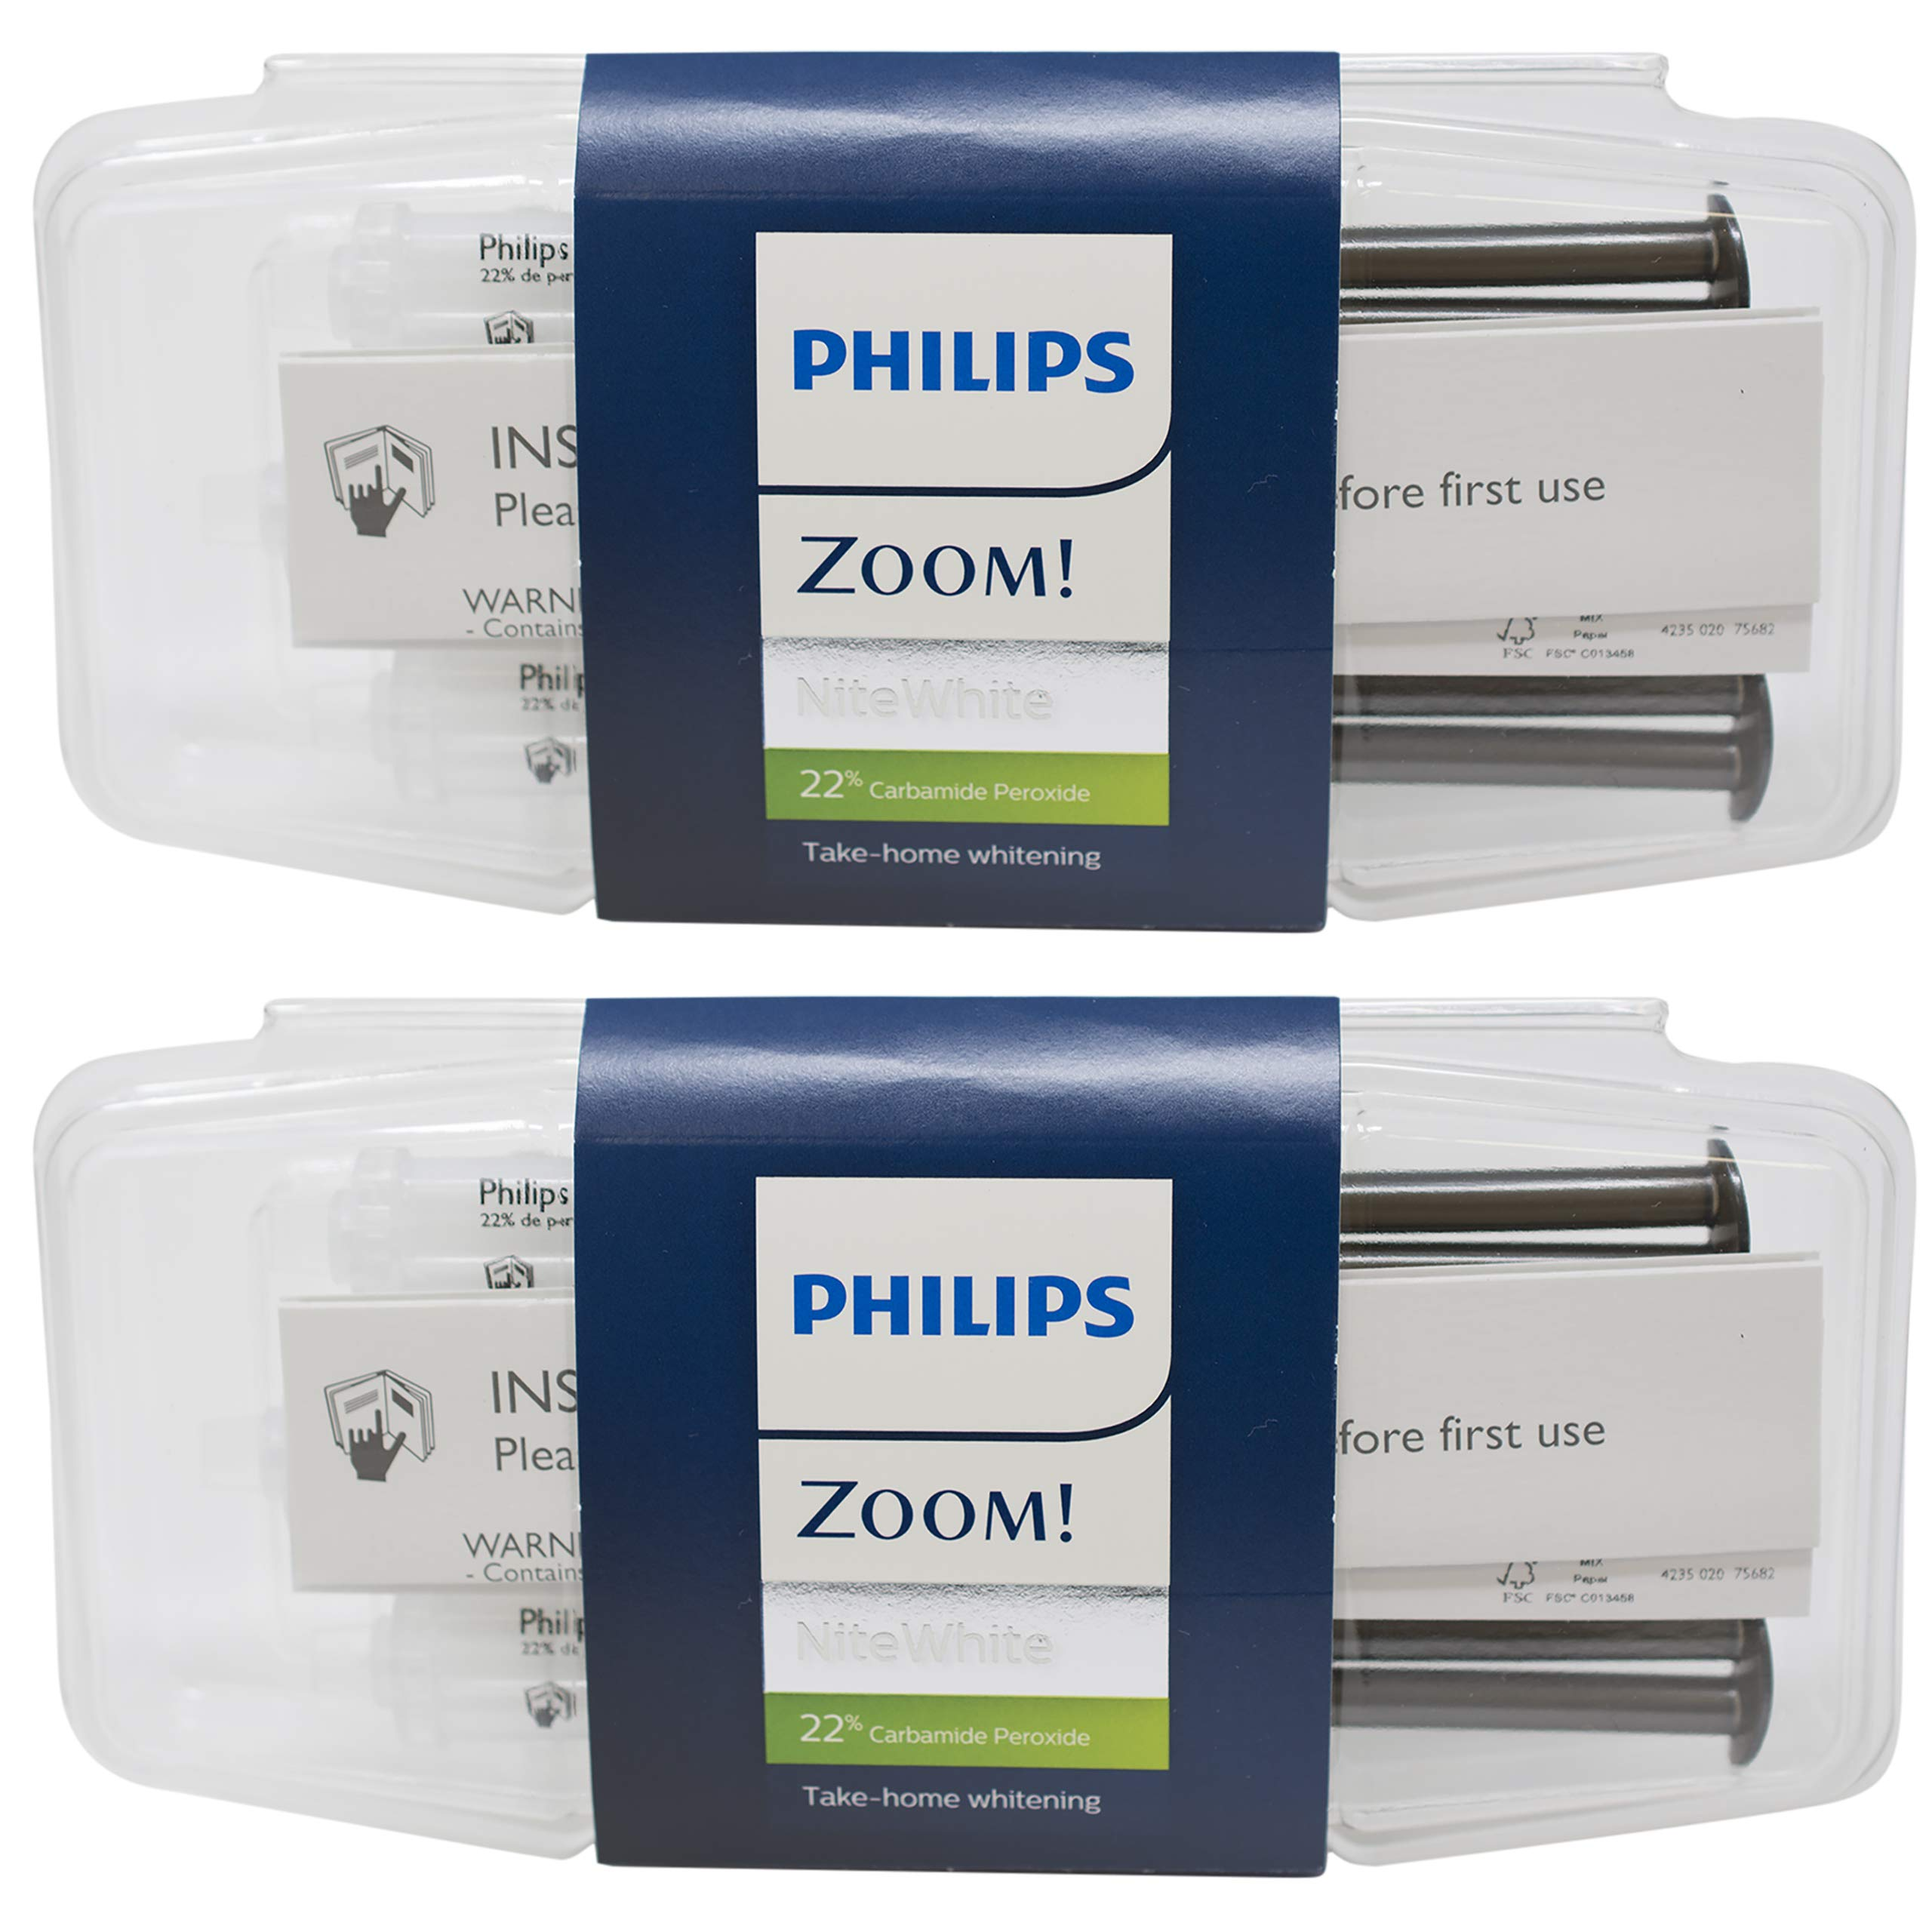 Philips Zoom Whitening (Nite White 22%, 6 syringes)